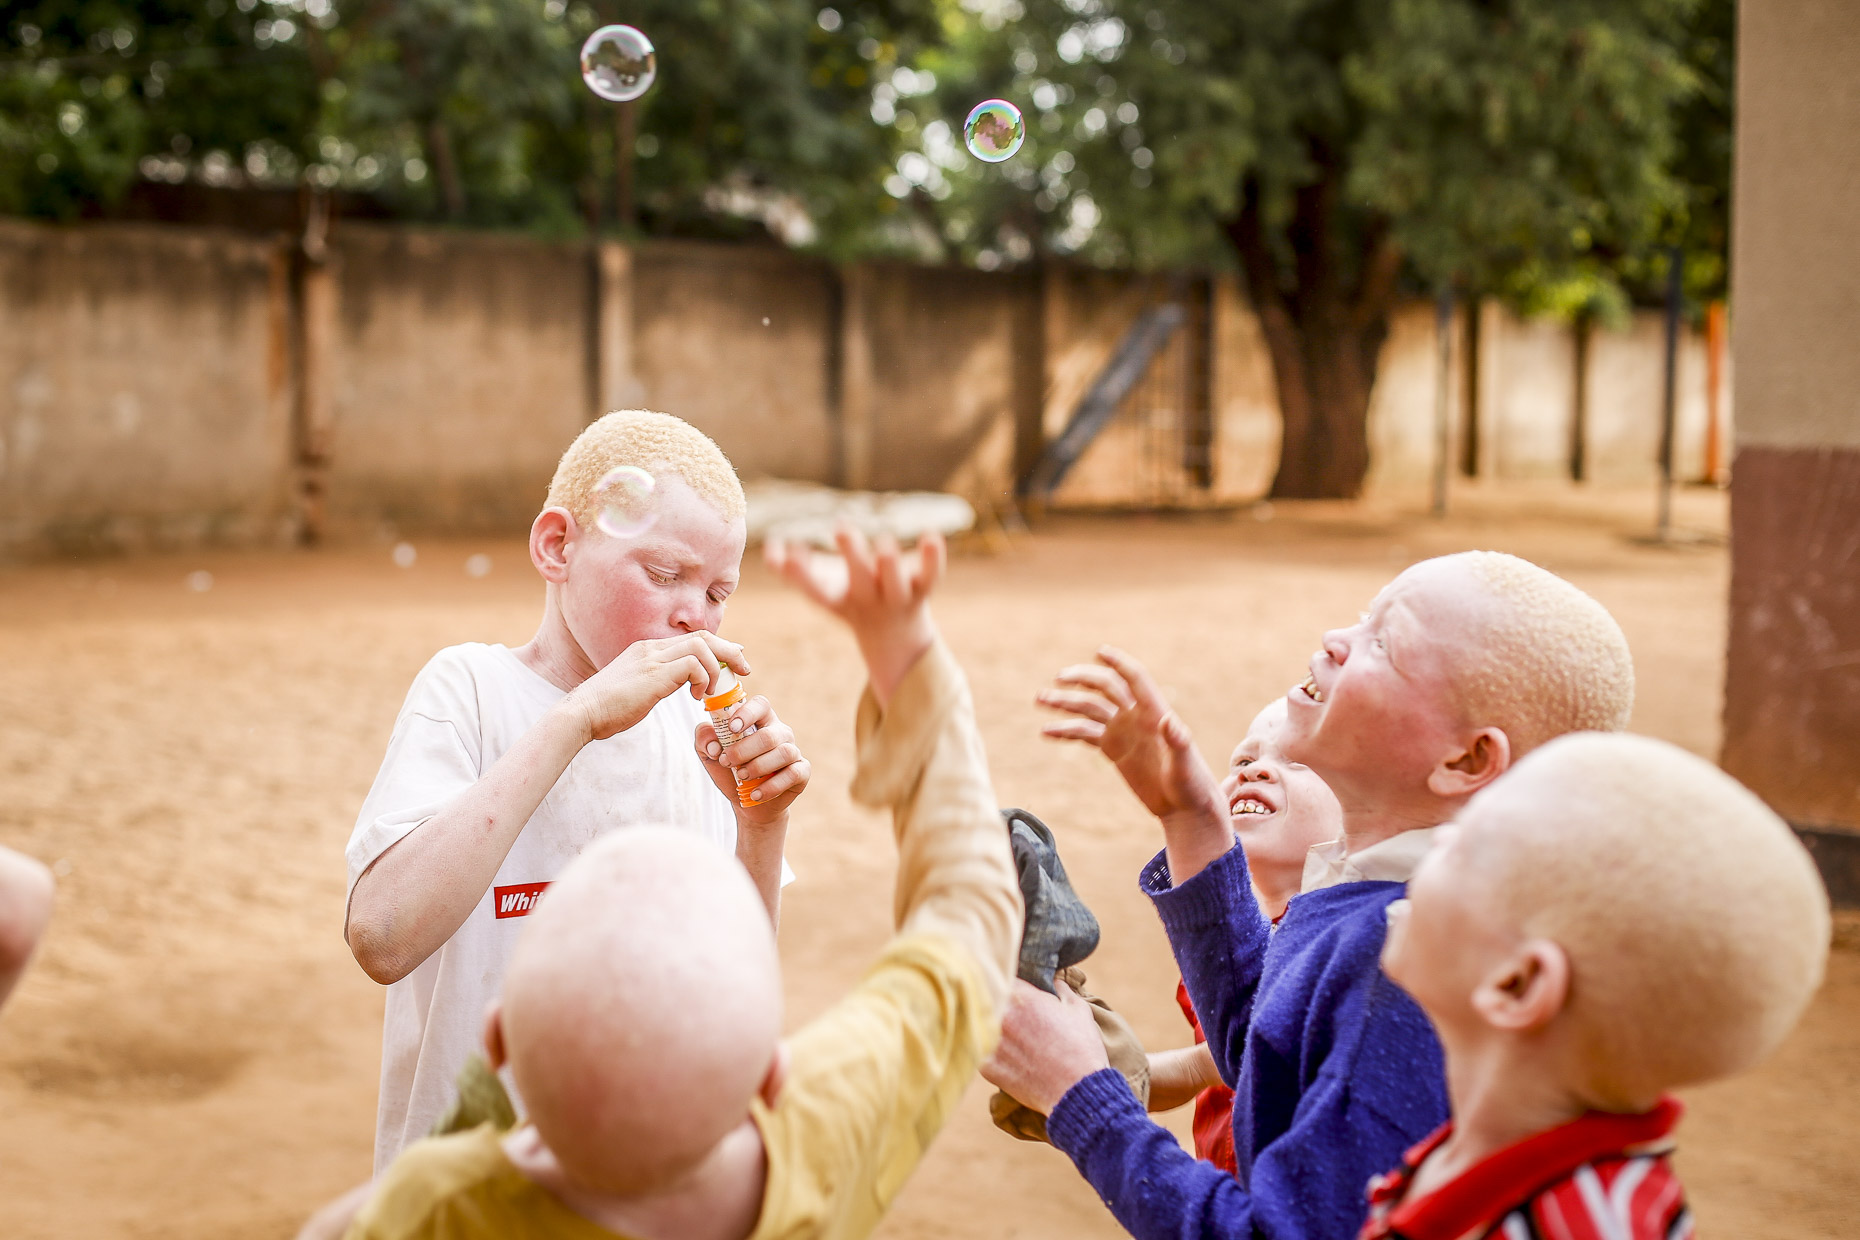 A group of albino boys delight in chasing bubbles in the coutyard of an East African orphanage